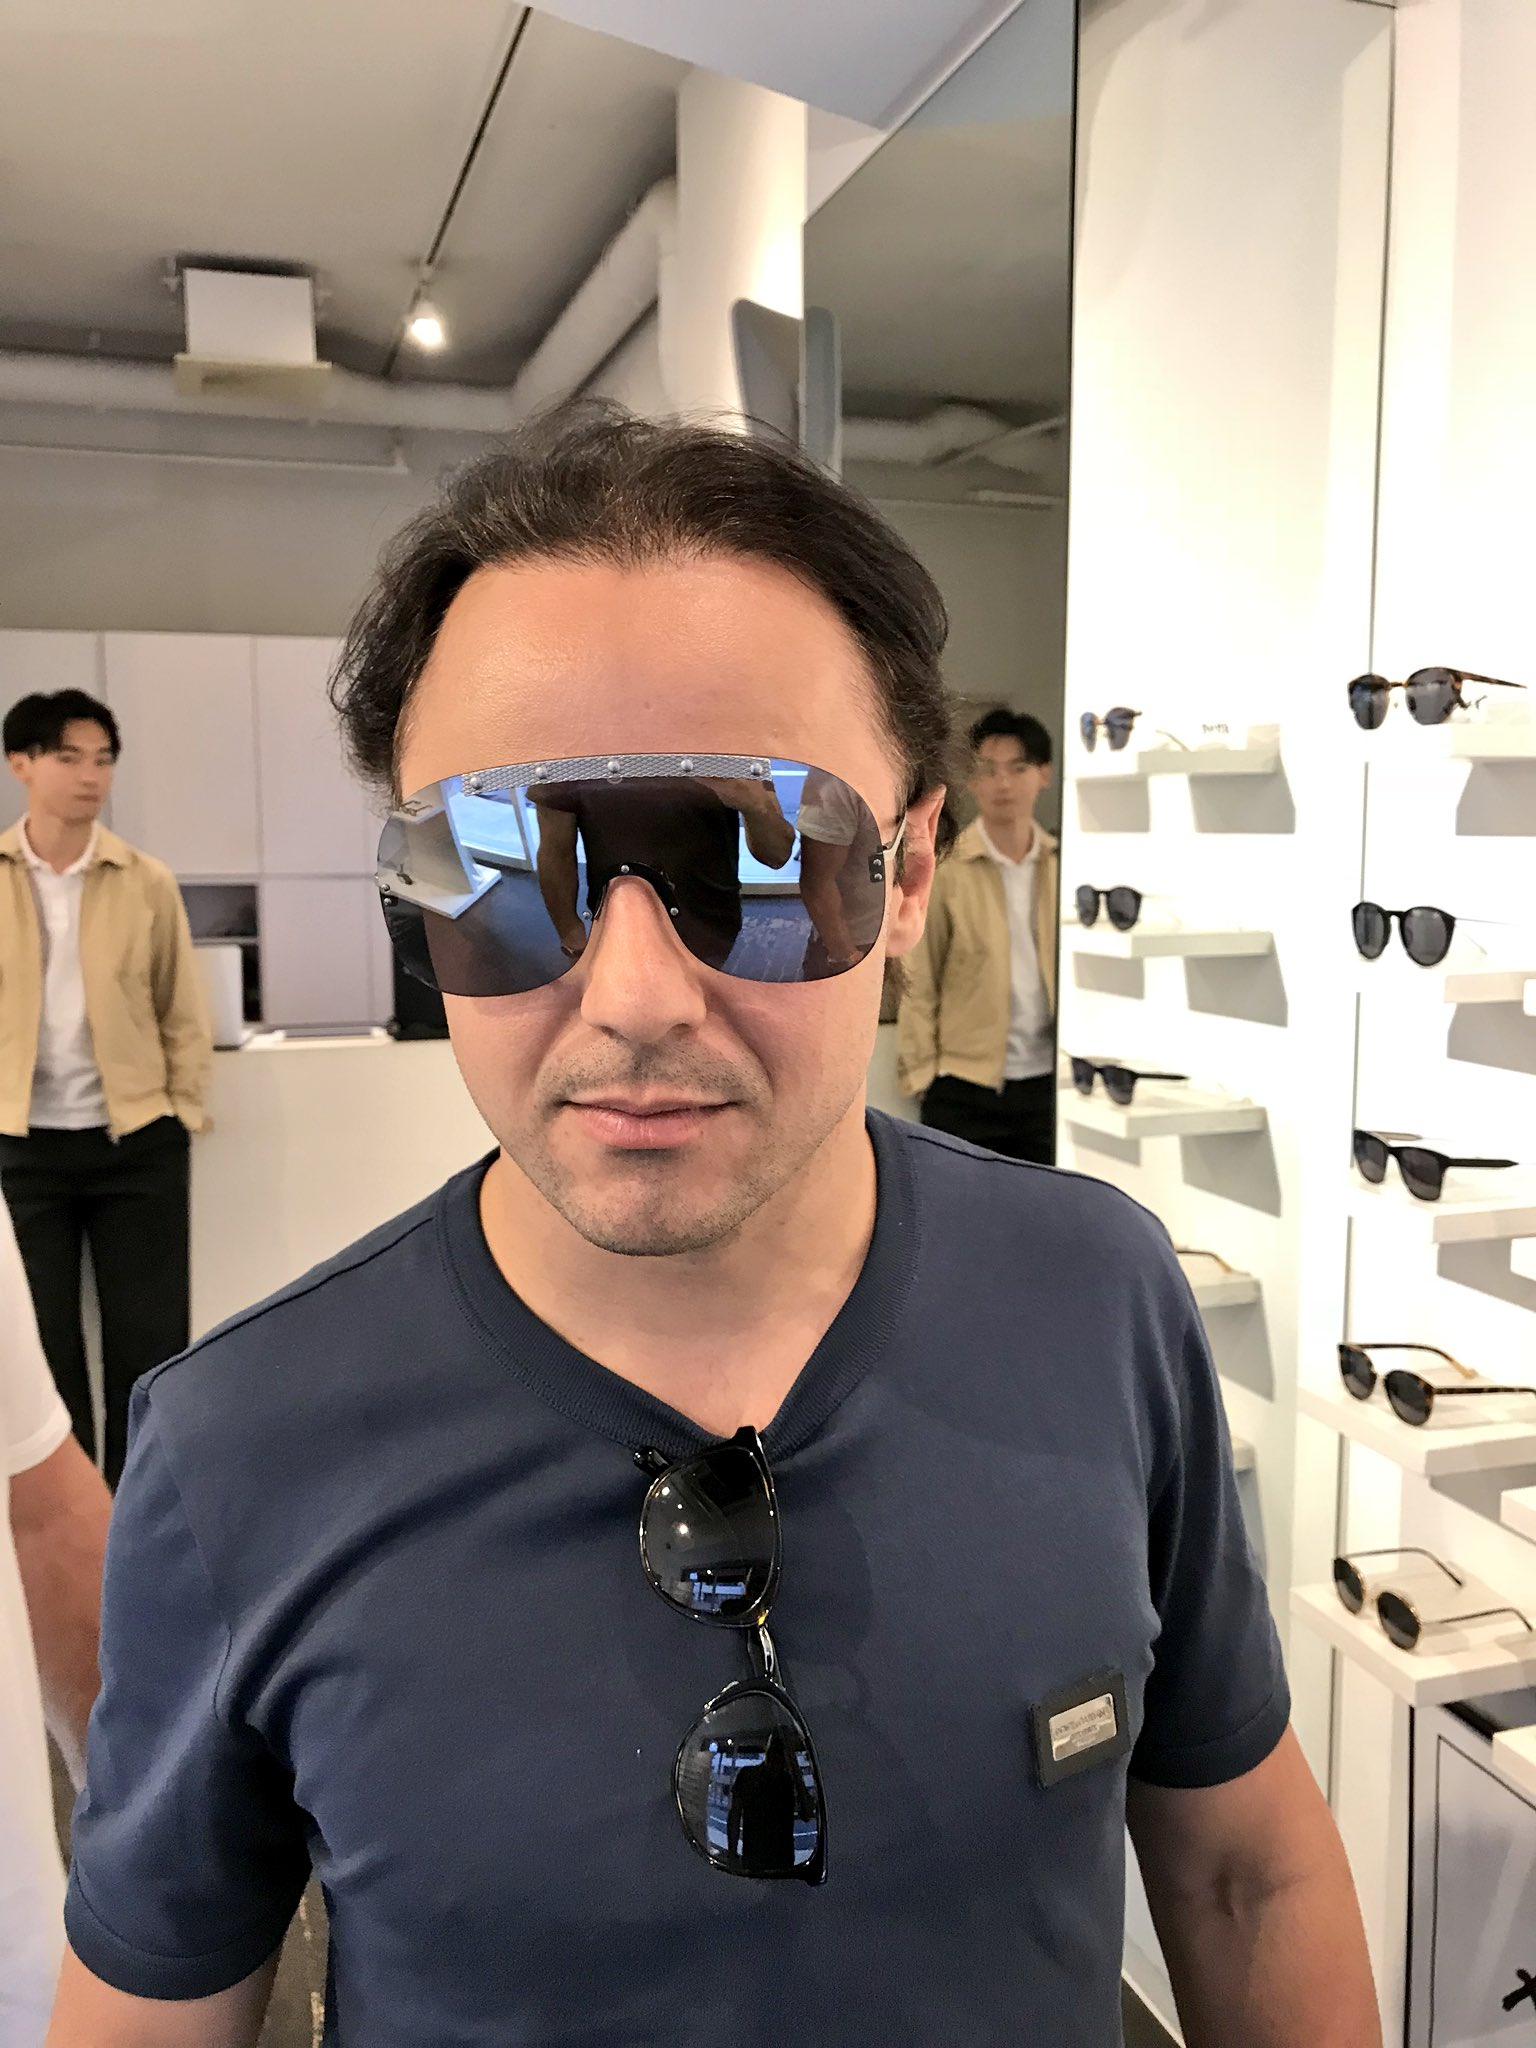 新しいサングラス @MassaFelipe19 ���� shopping sunglasses in Tokyo https://t.co/RgzDrAX0EX